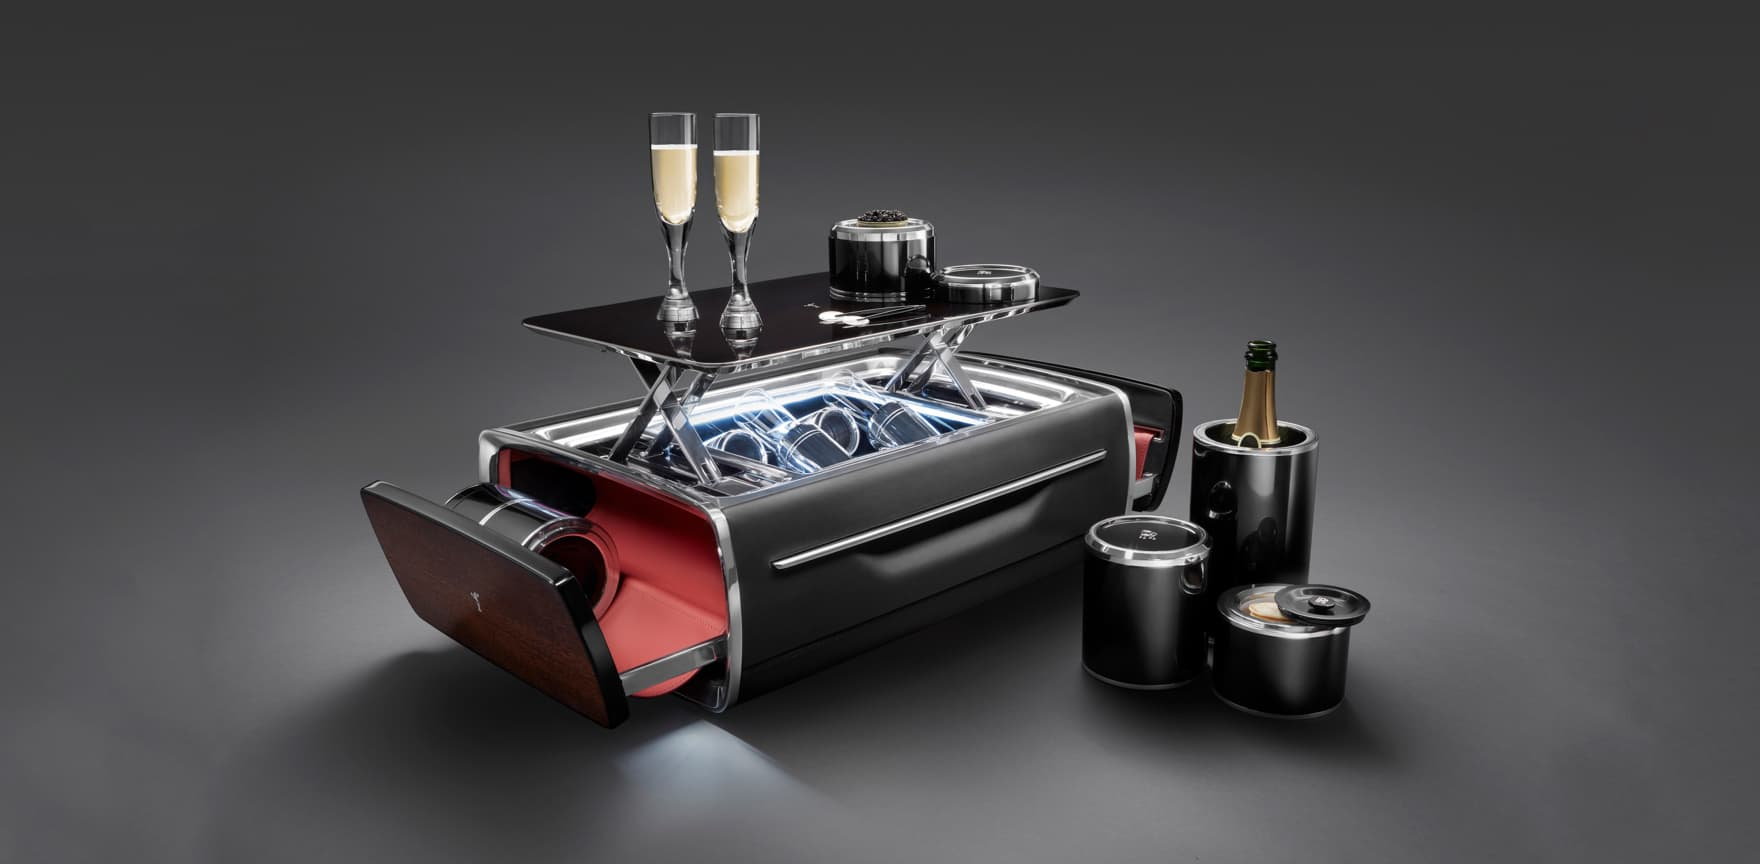 The Rolls-Royce Champagne Chest effortlessly opens at the push of a button to reveal a perfectly appointed champagne set